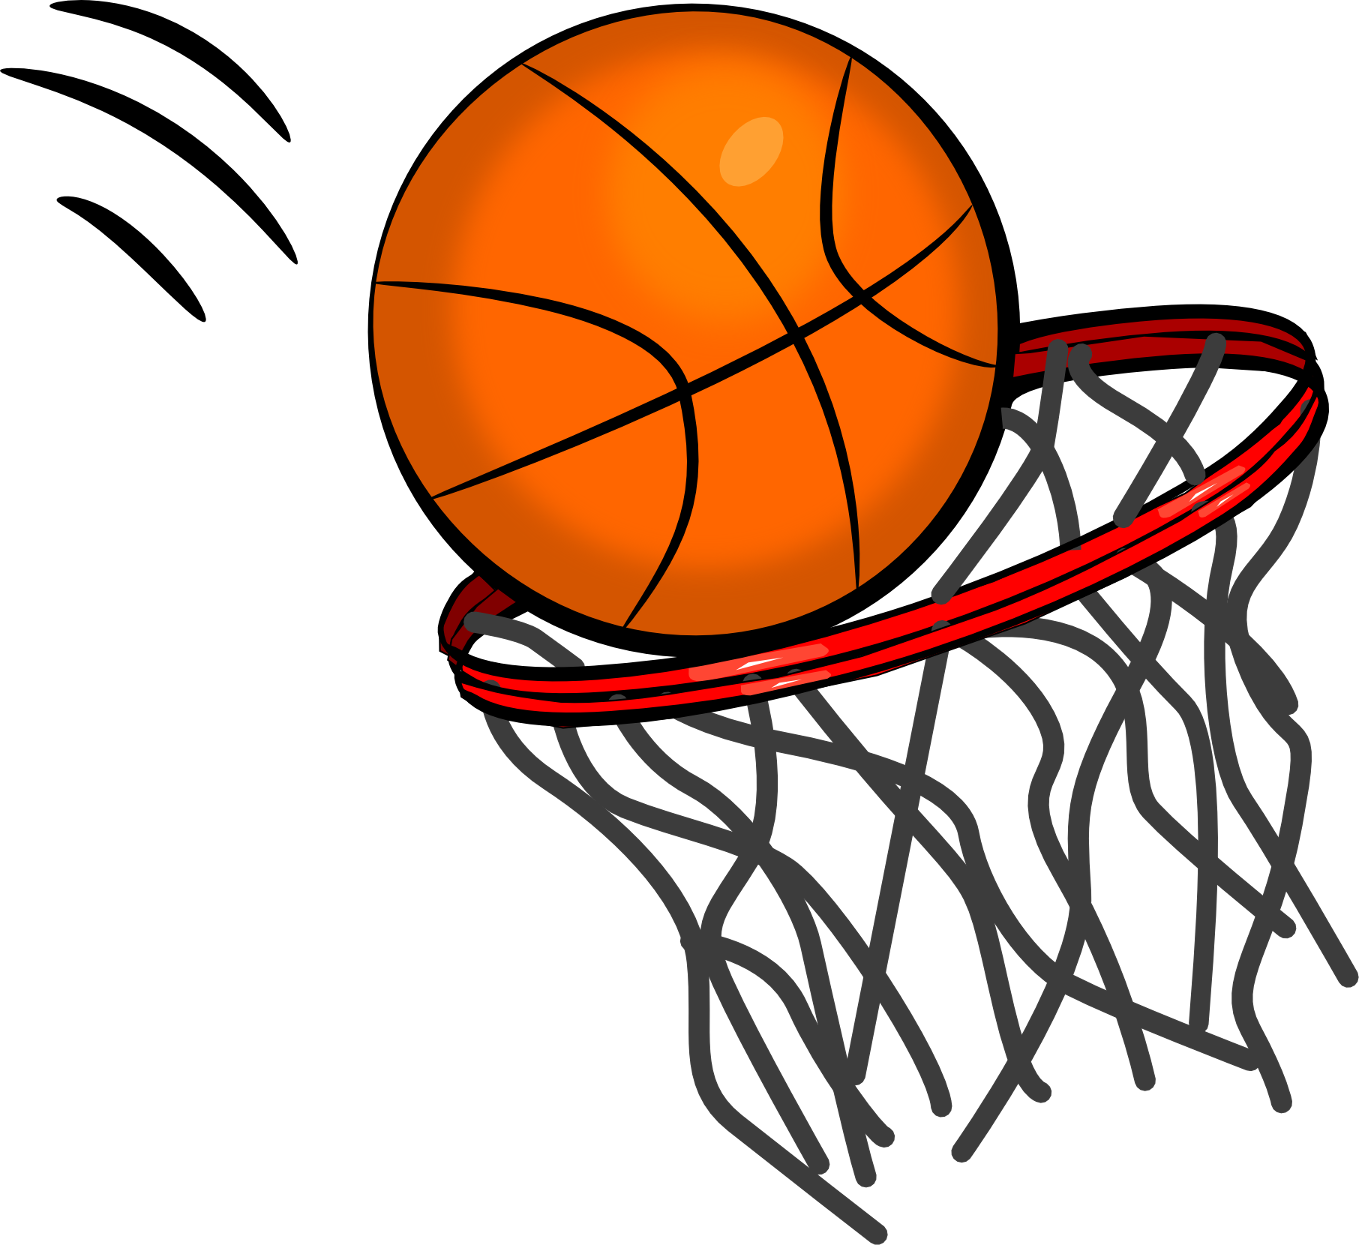 Basket Et Coupe D Europe Panier Basketball Joueurs De Basketball Clip Art